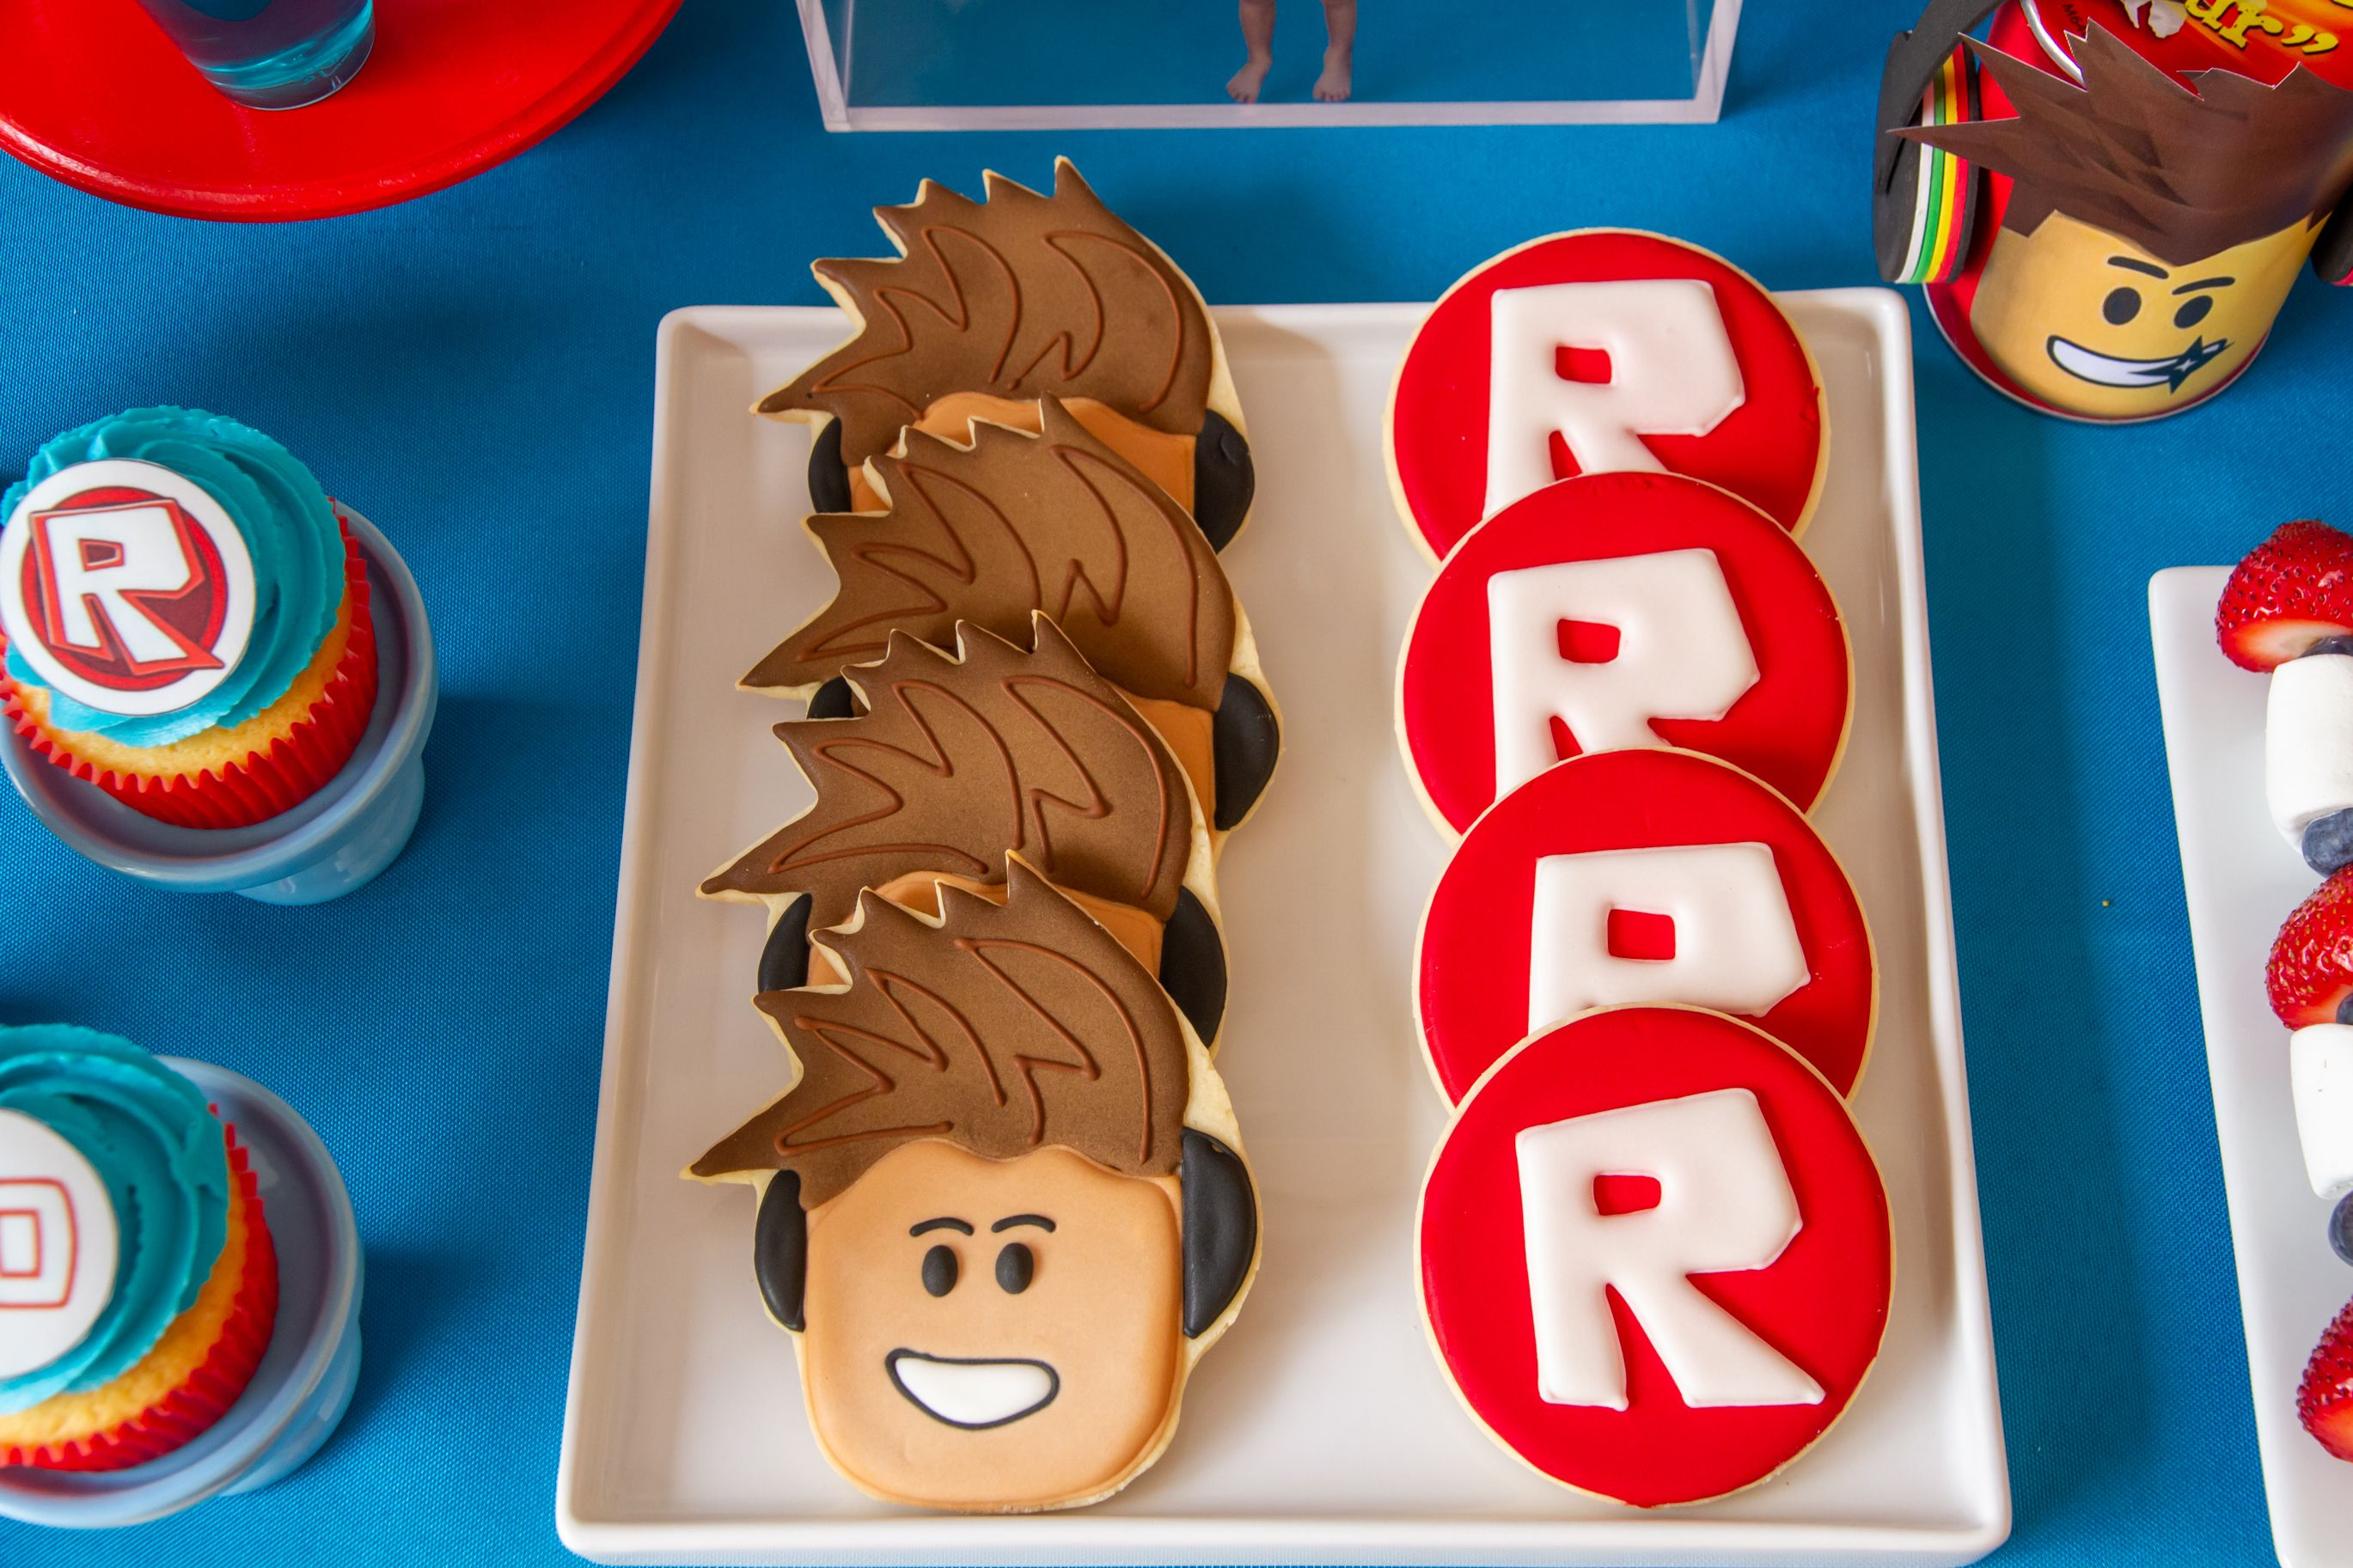 Best Ever Roblox Birthday Party Parties Made Personal in